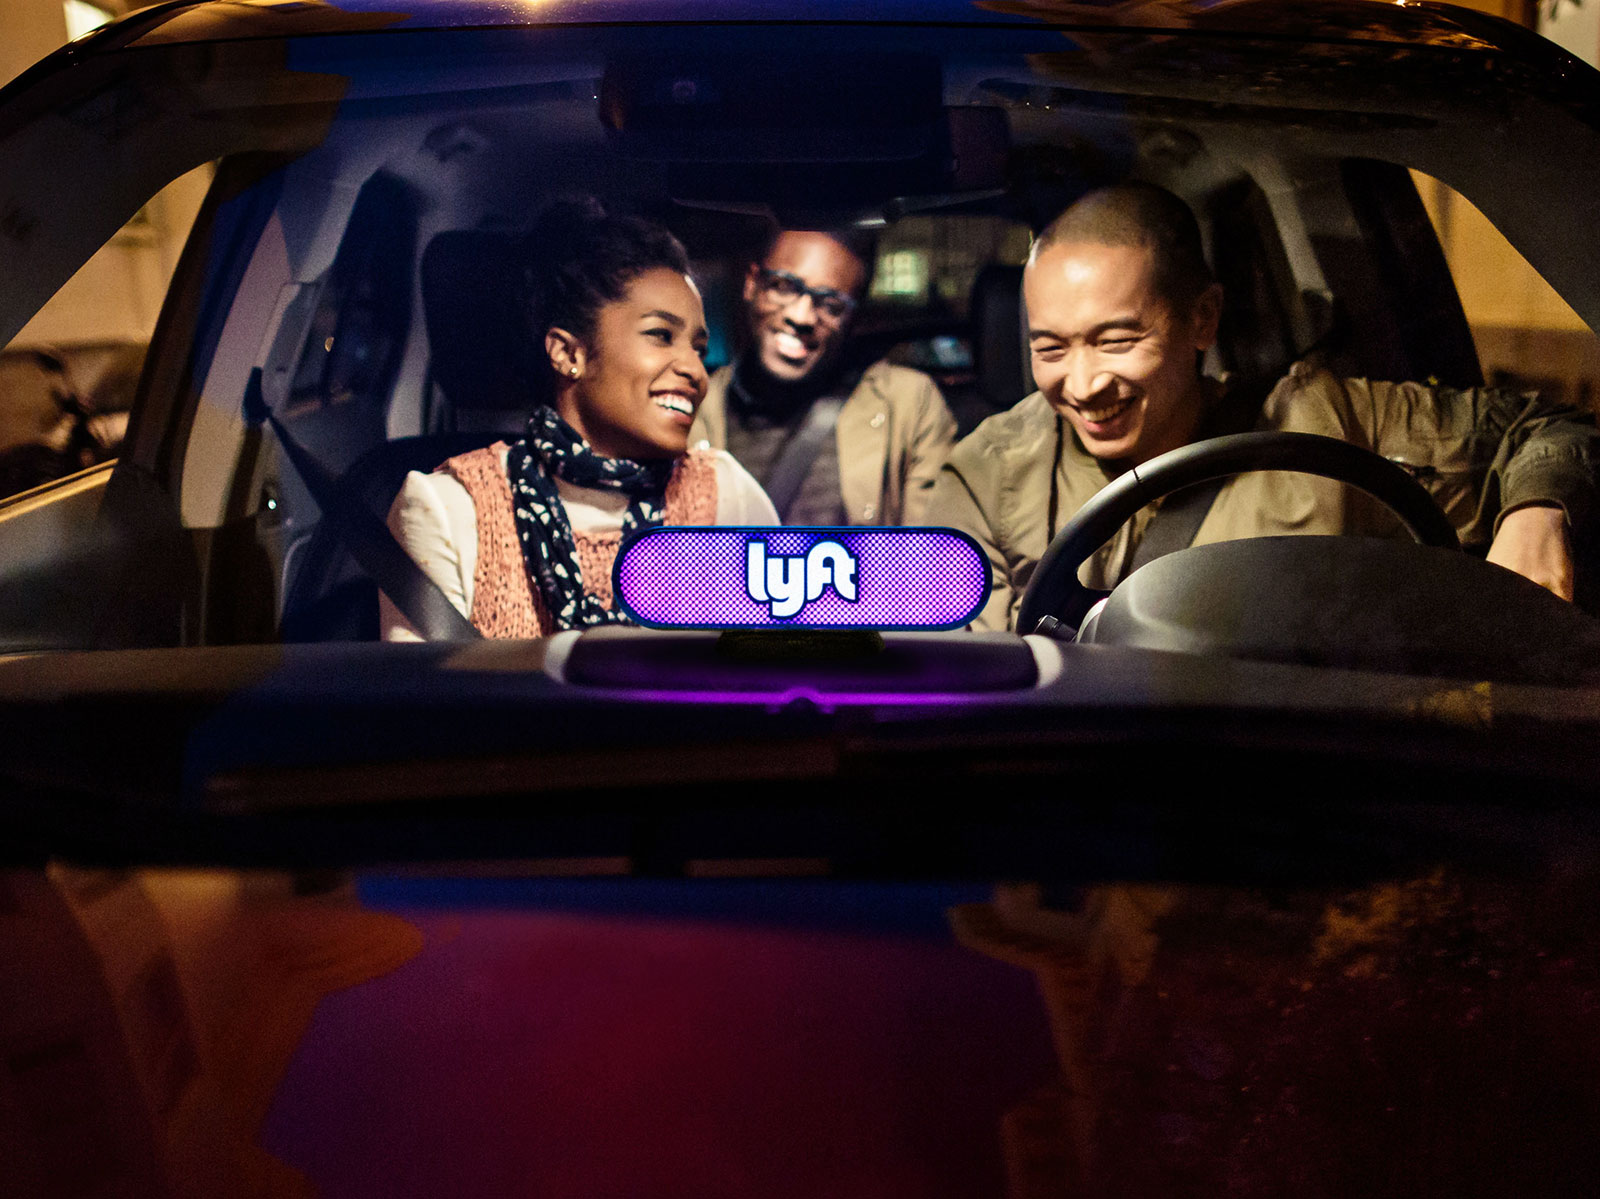 Massachusetts brewers guild partners with Lyft